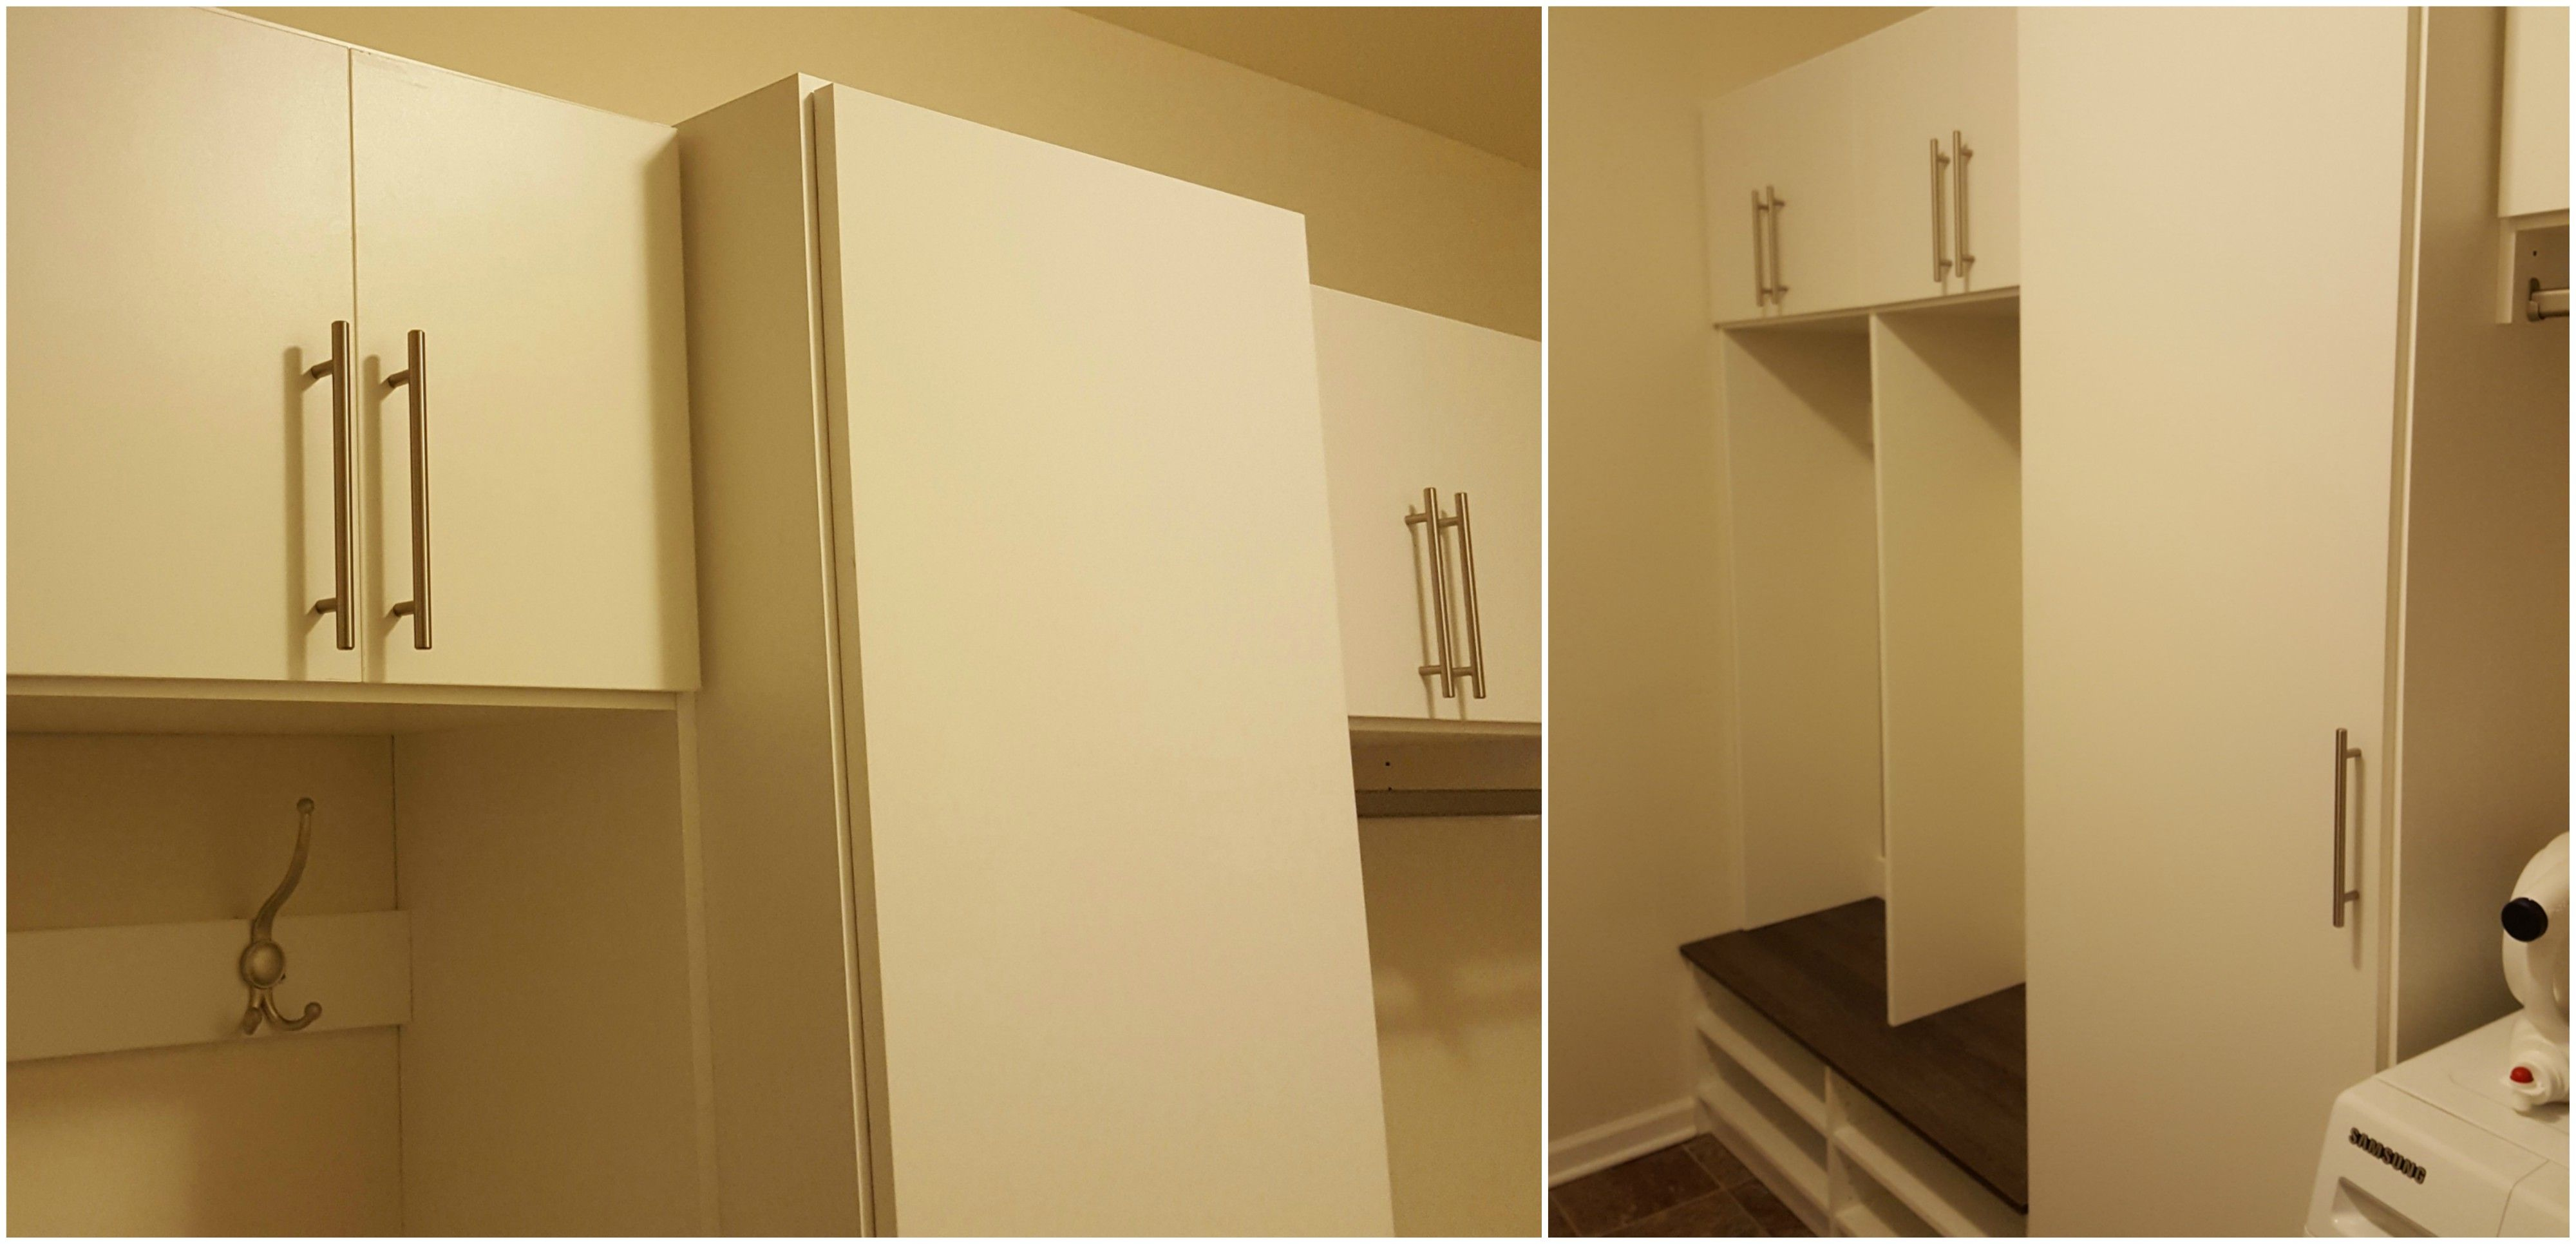 White melamine laundry room cabinets with doors, adjustable shelving ...